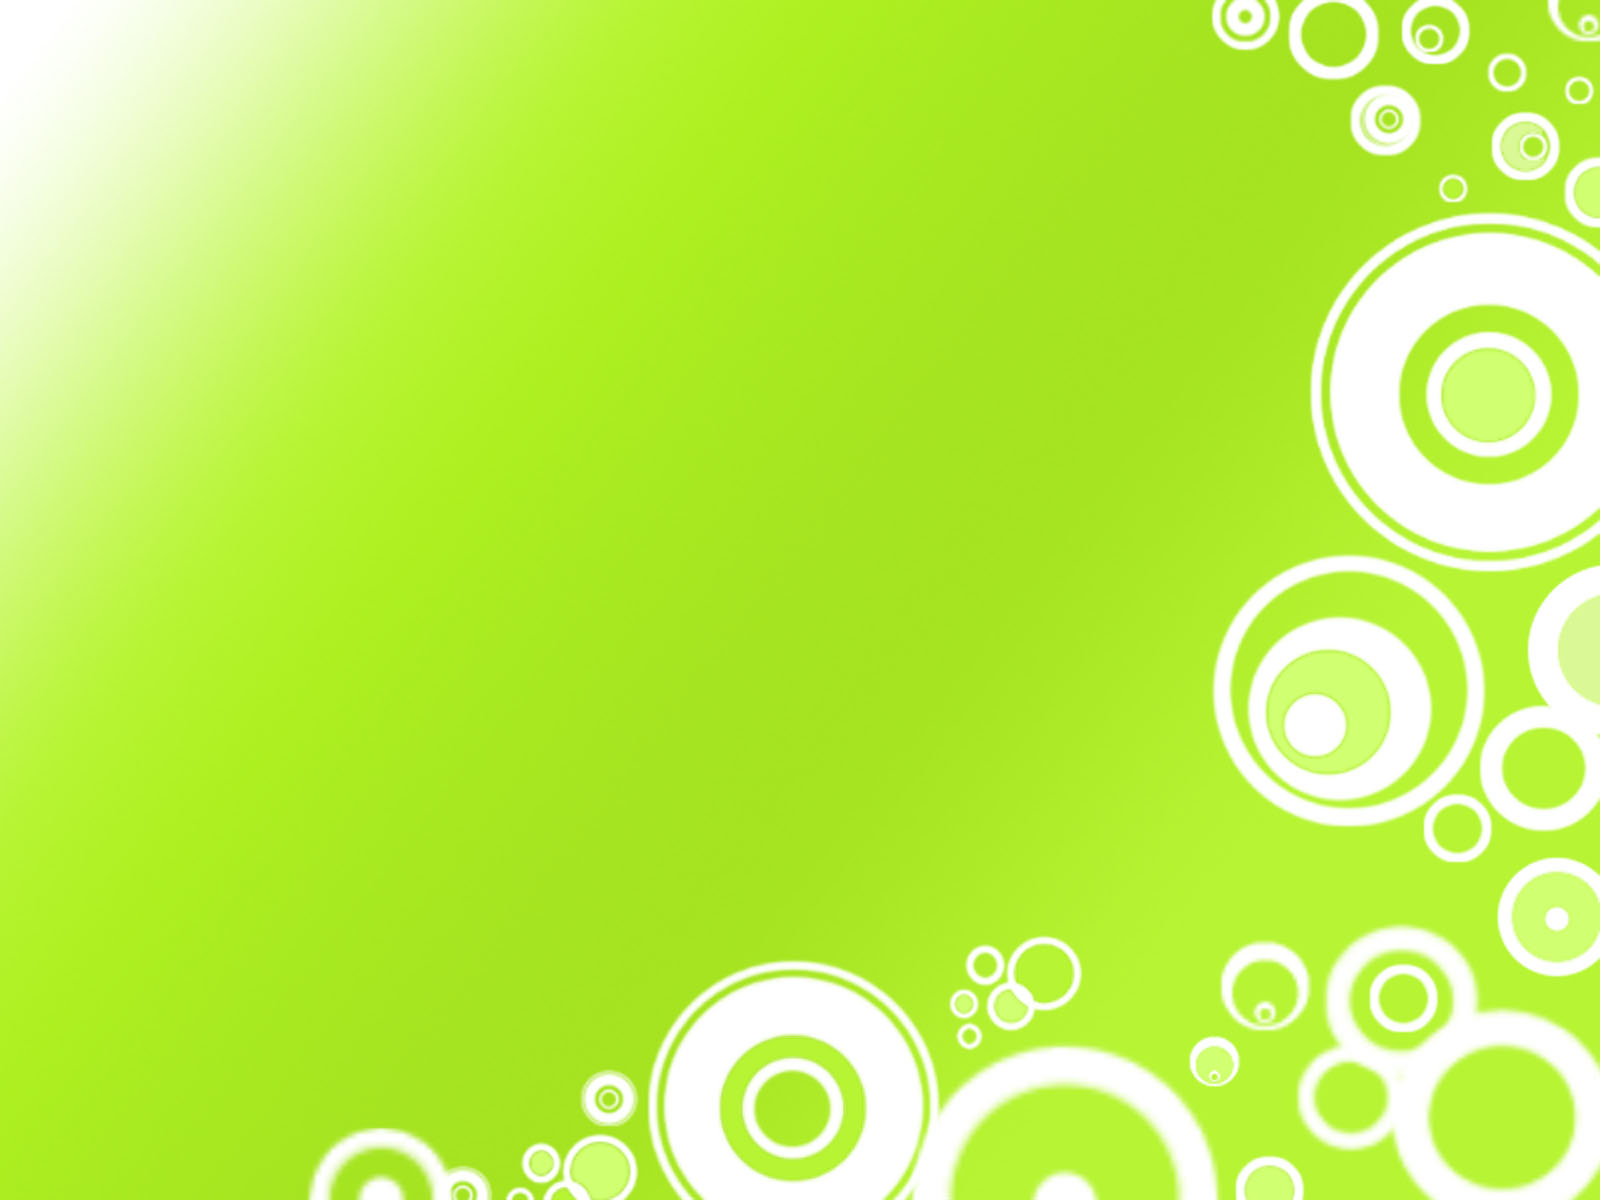 http://2.bp.blogspot.com/-jvmd7735nZM/UEaPp7D7guI/AAAAAAAAAxI/0oCDVYhHBuw/s1600/light-green-wallpapers.jpg